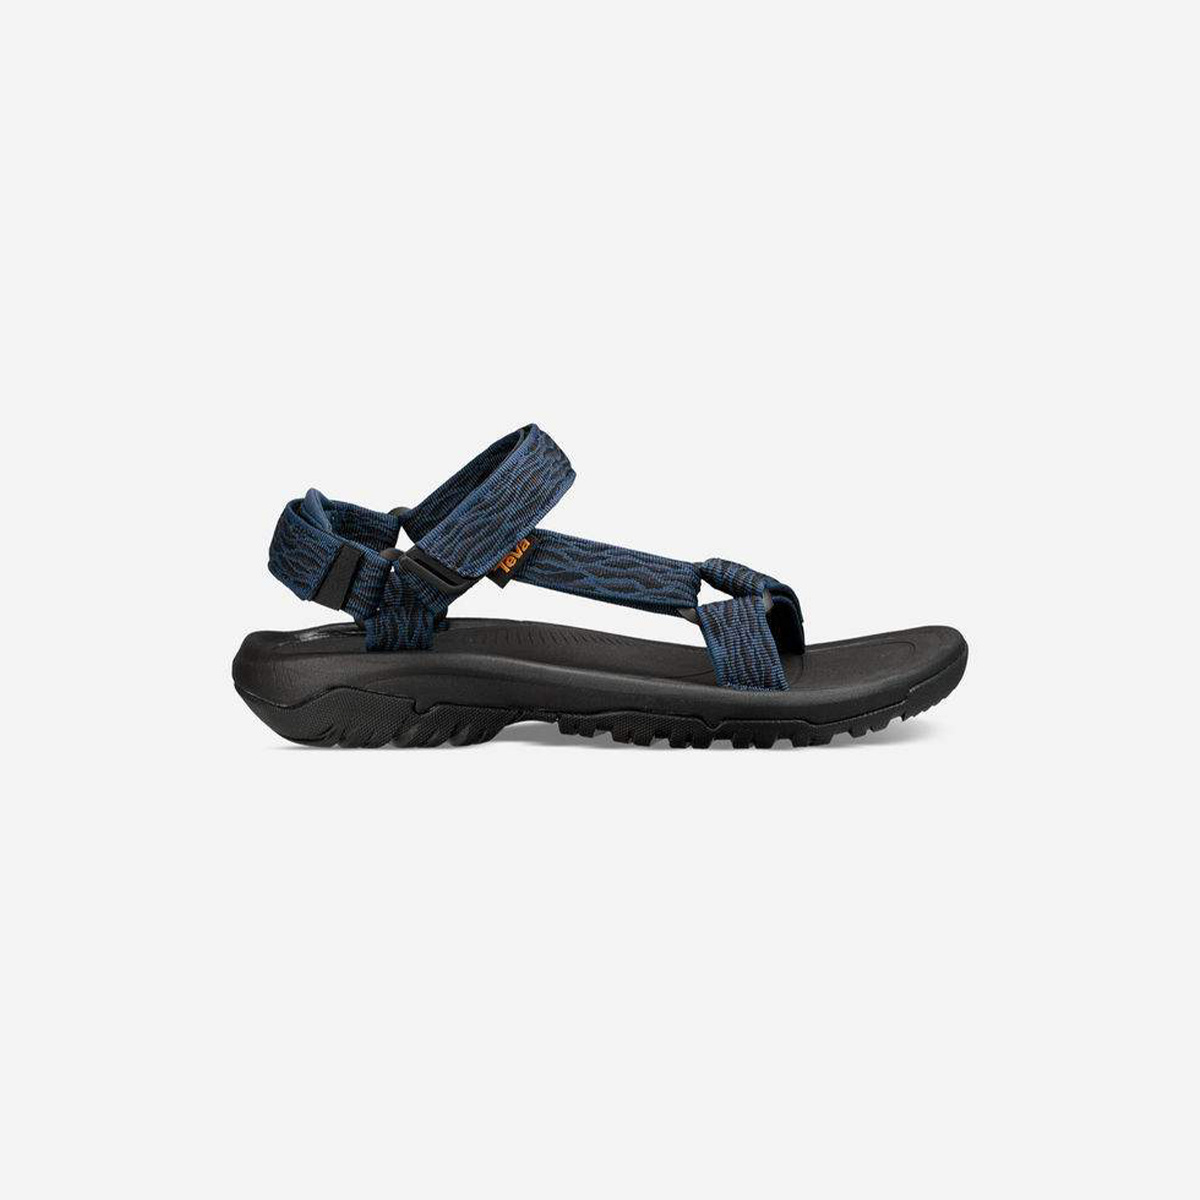 TEVA Men's Hurricane XLT 2